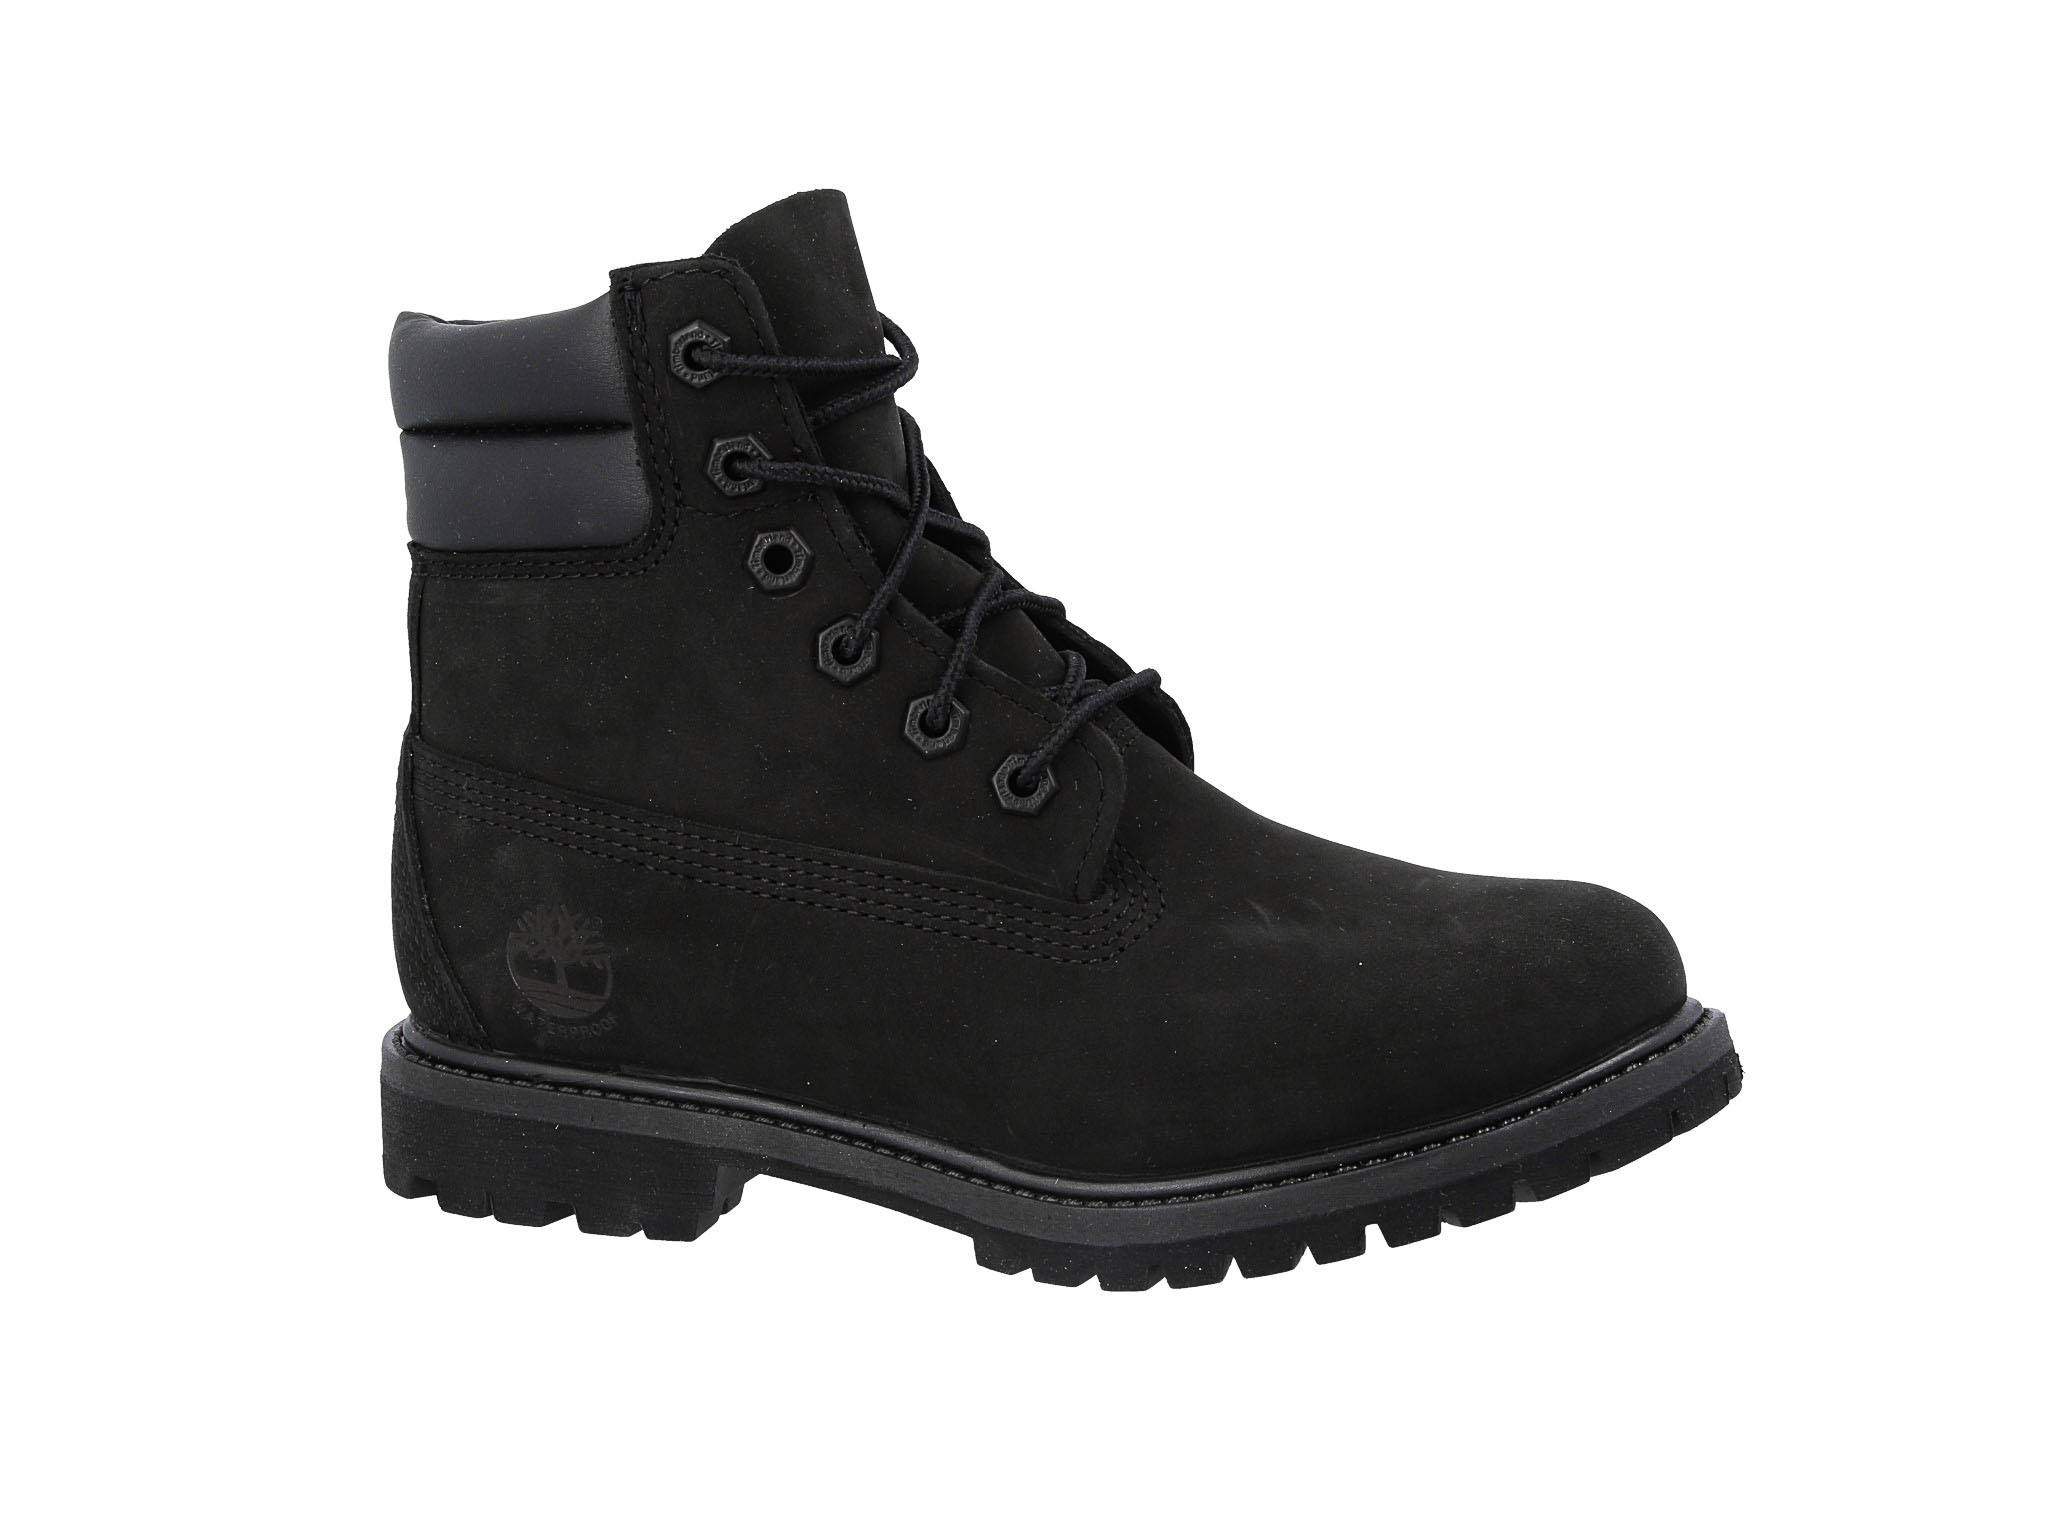 Bakancs TIMBERLAND Waterville 6 In Waterproof Boot TB0A15QY0011 Black Nubuck